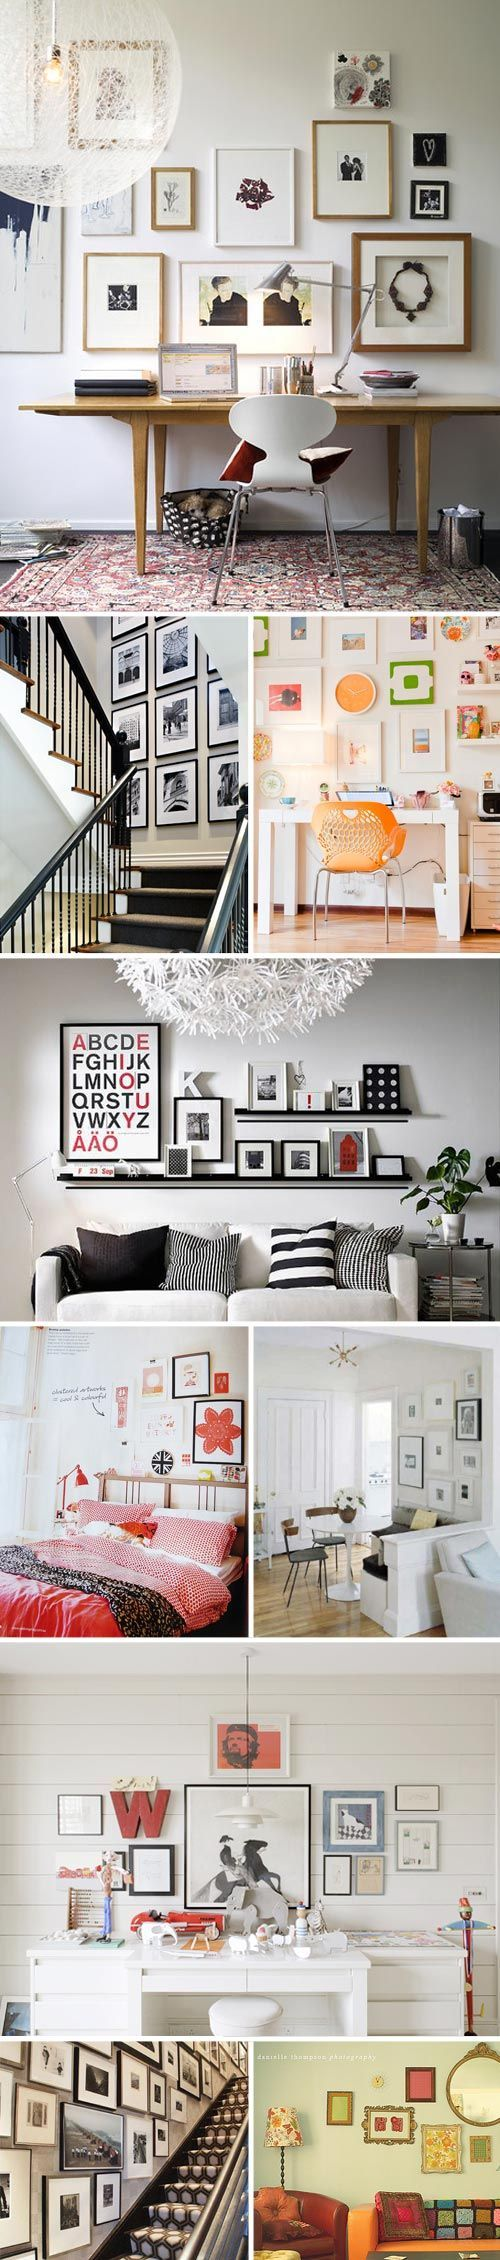 Home products company decorating ideas news amp media download contact - 12 Foolproof Way To Hang Your Favourite Pictures